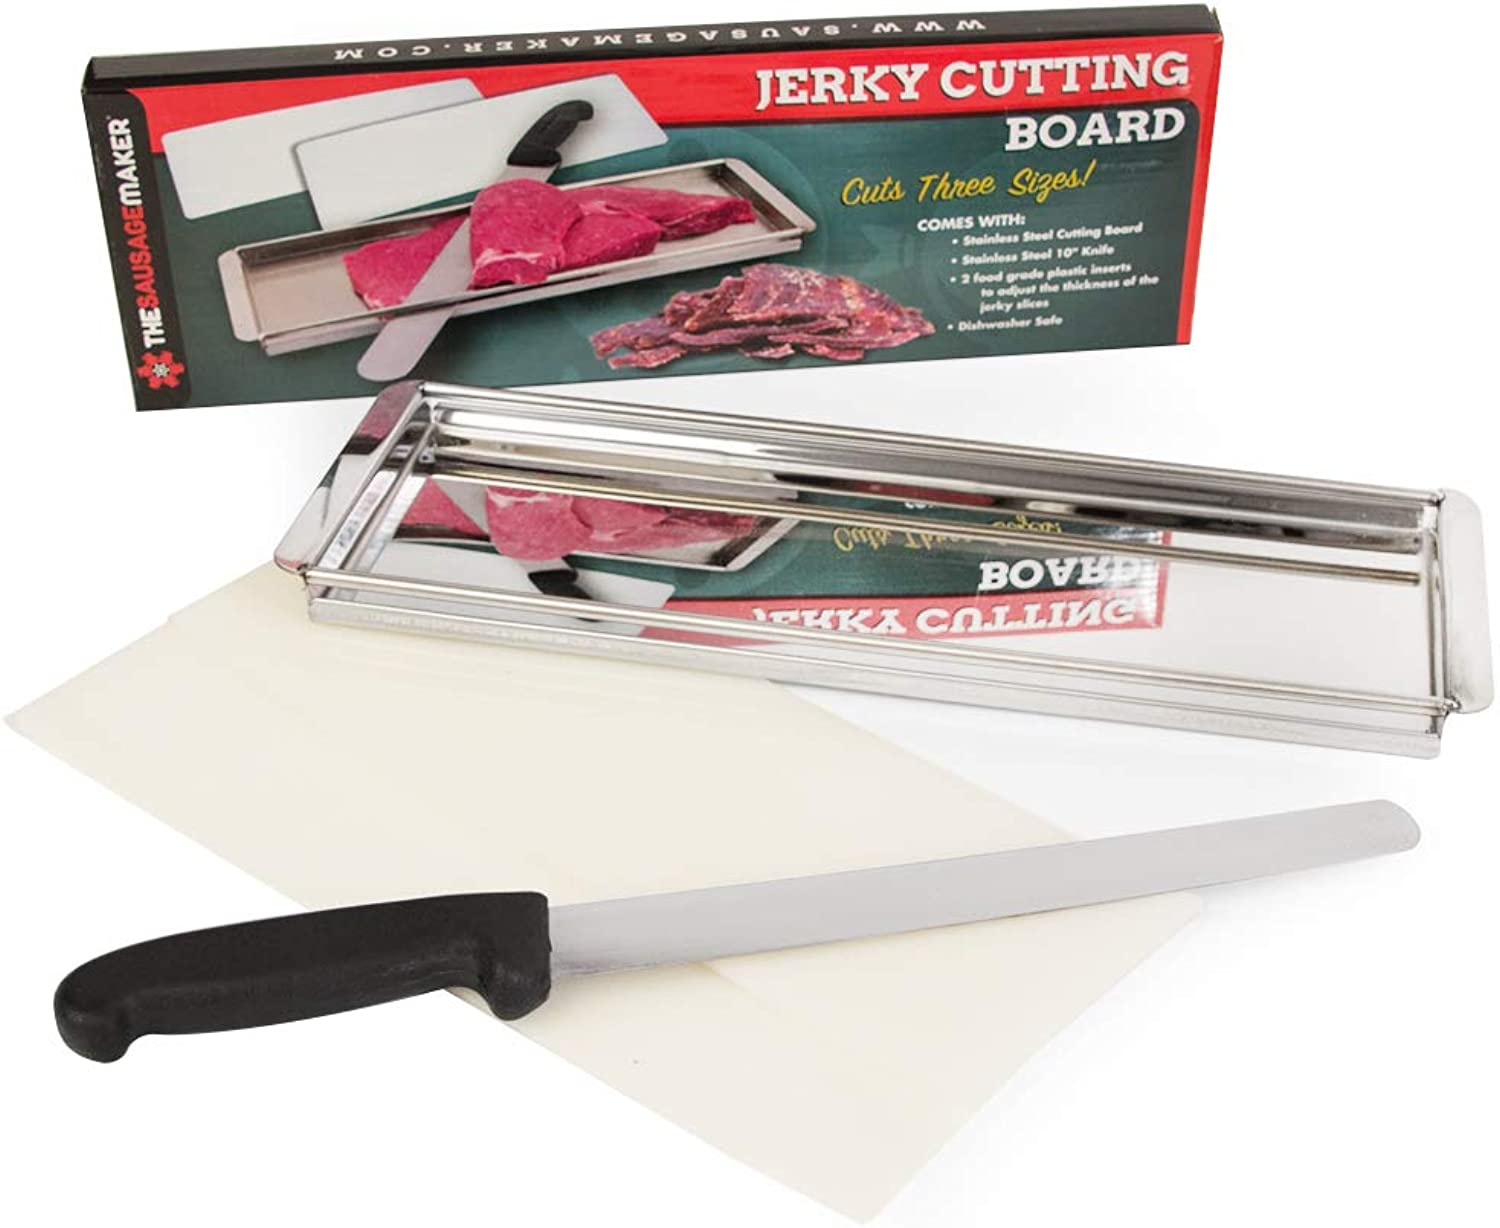 TSM Products Jerky Cutting Board and 10-Inch Slicer Knife